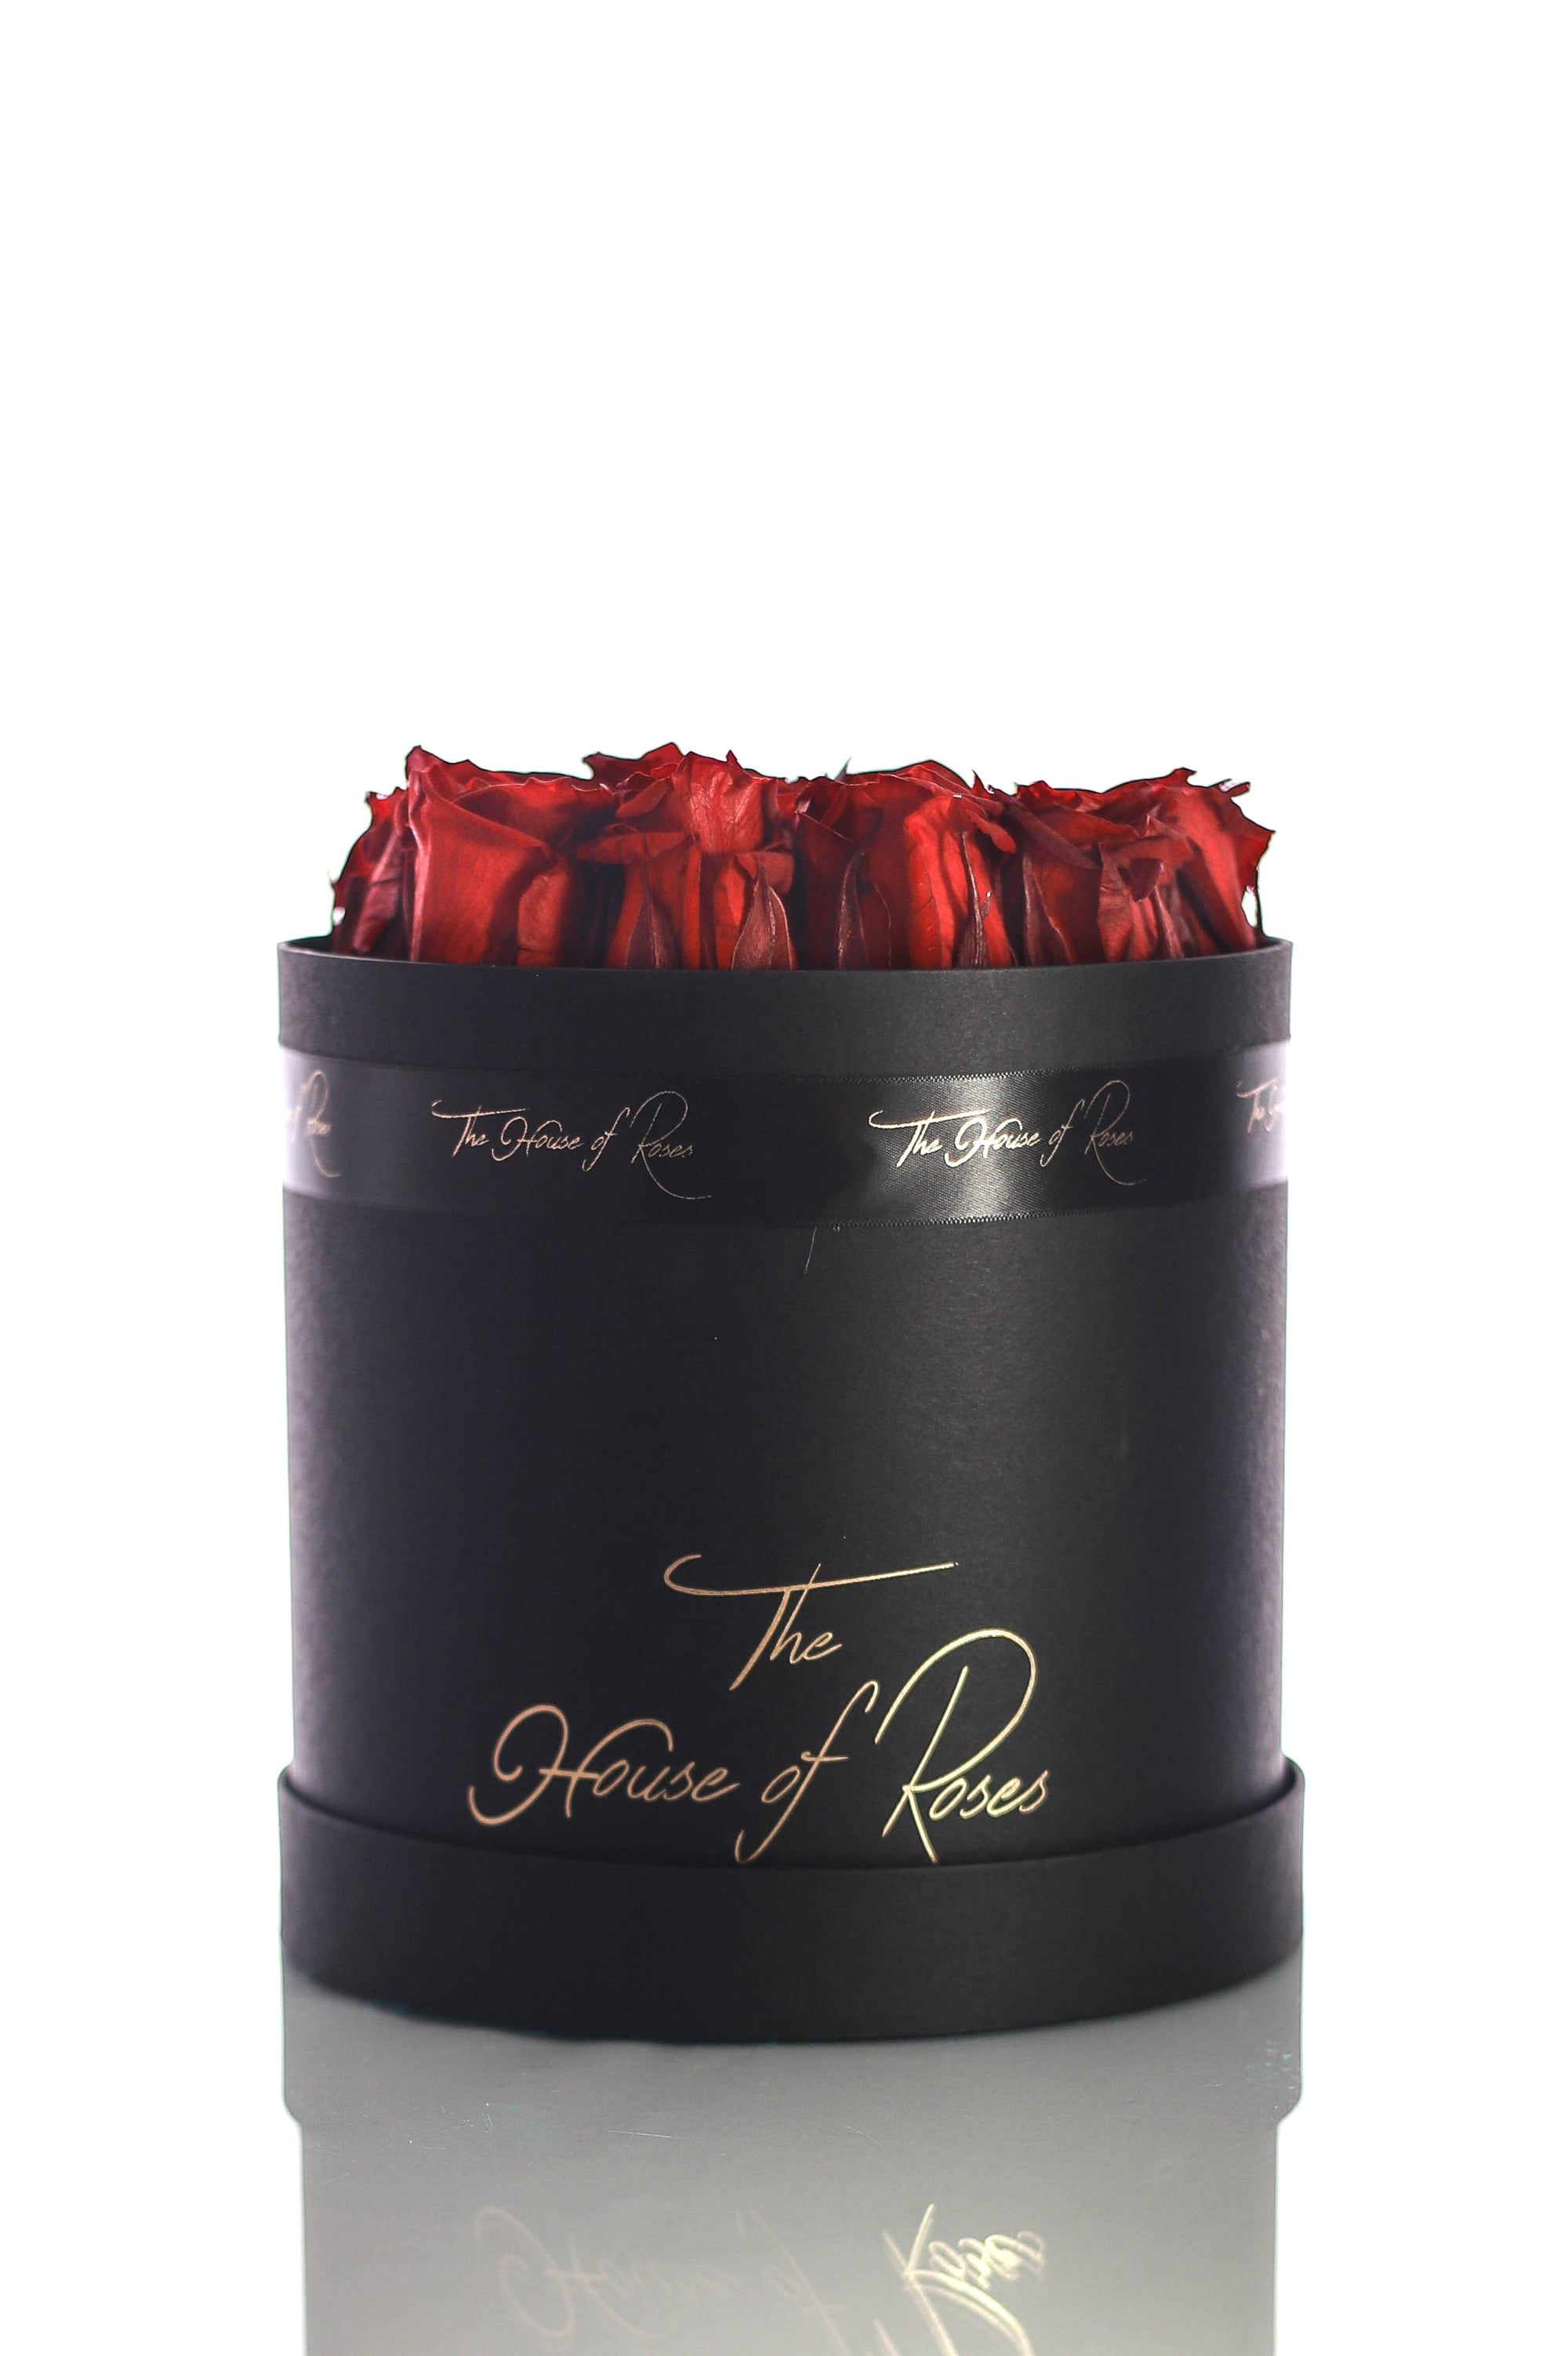 Eternal Rose Hatbox - Black - The House of Roses London